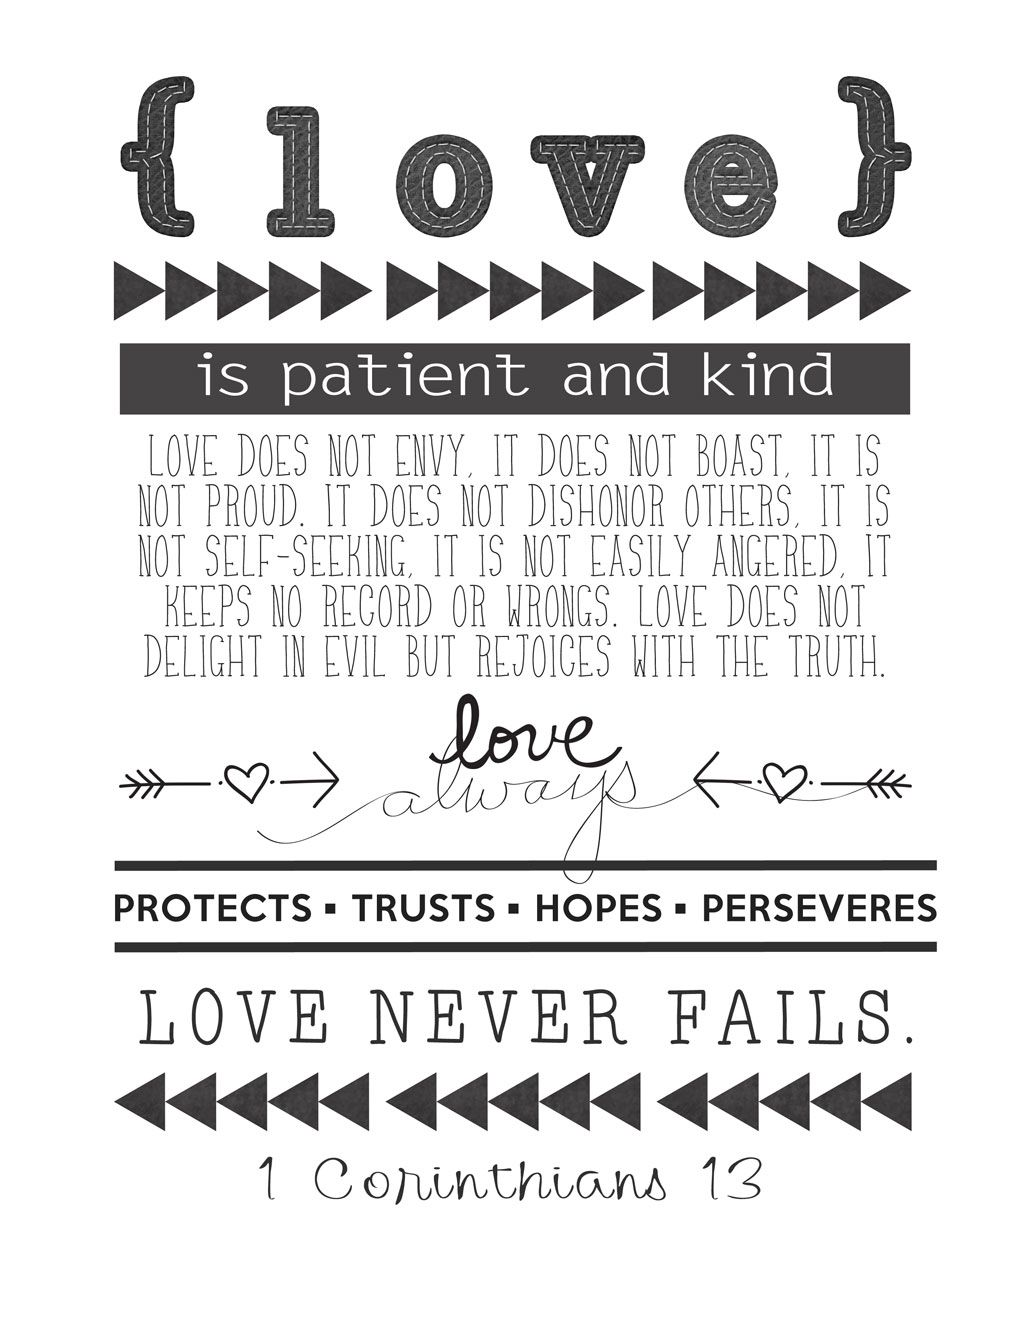 1 Corinthians 13 Reminder Of How By These Traits We Show Gods Love To Others Affect